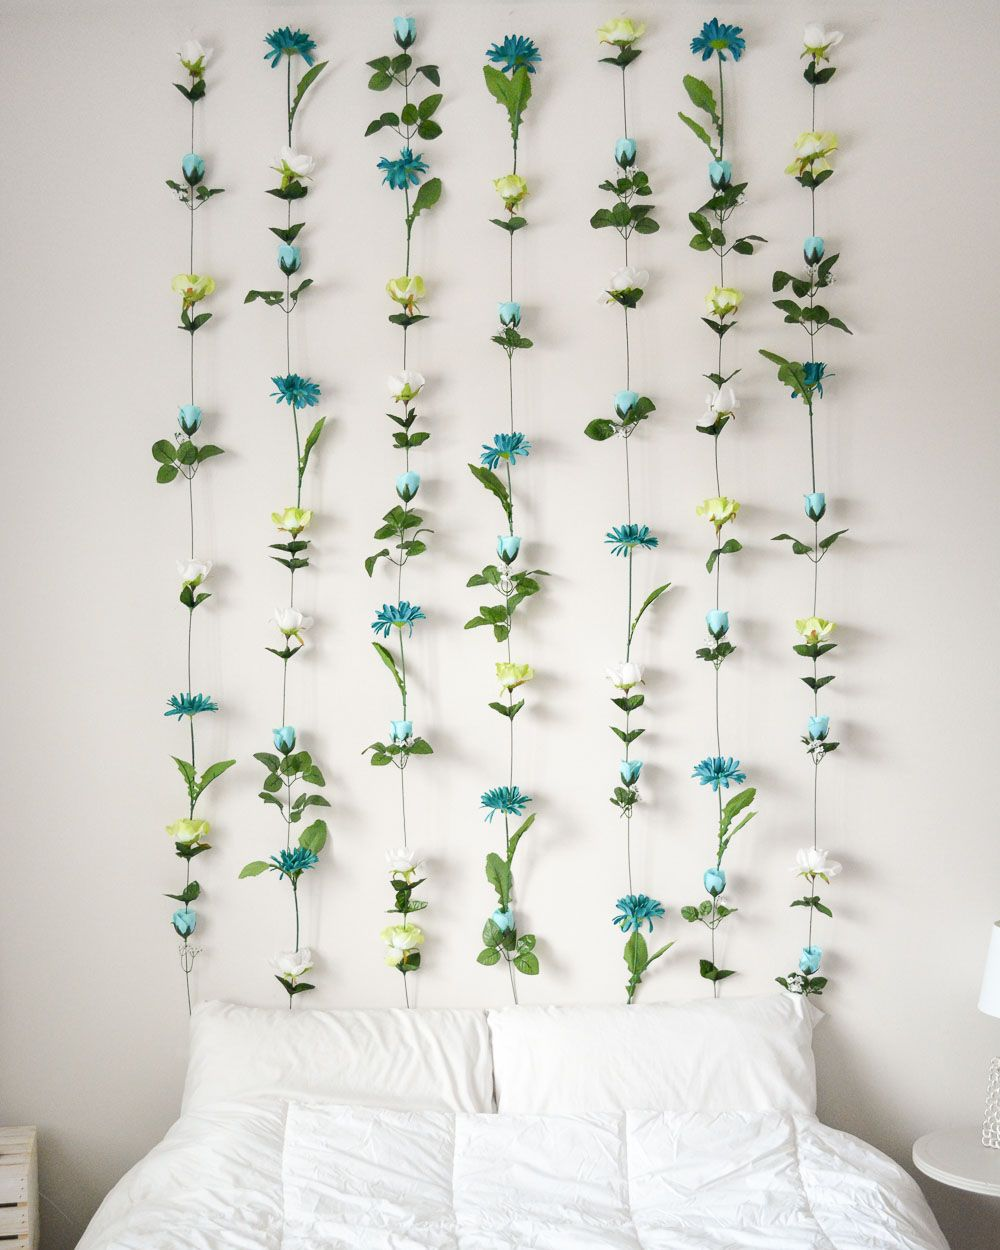 25 Wall Decoration Ideas For Your Home: 10 Best DIY Wall Decor Ideas In 2018